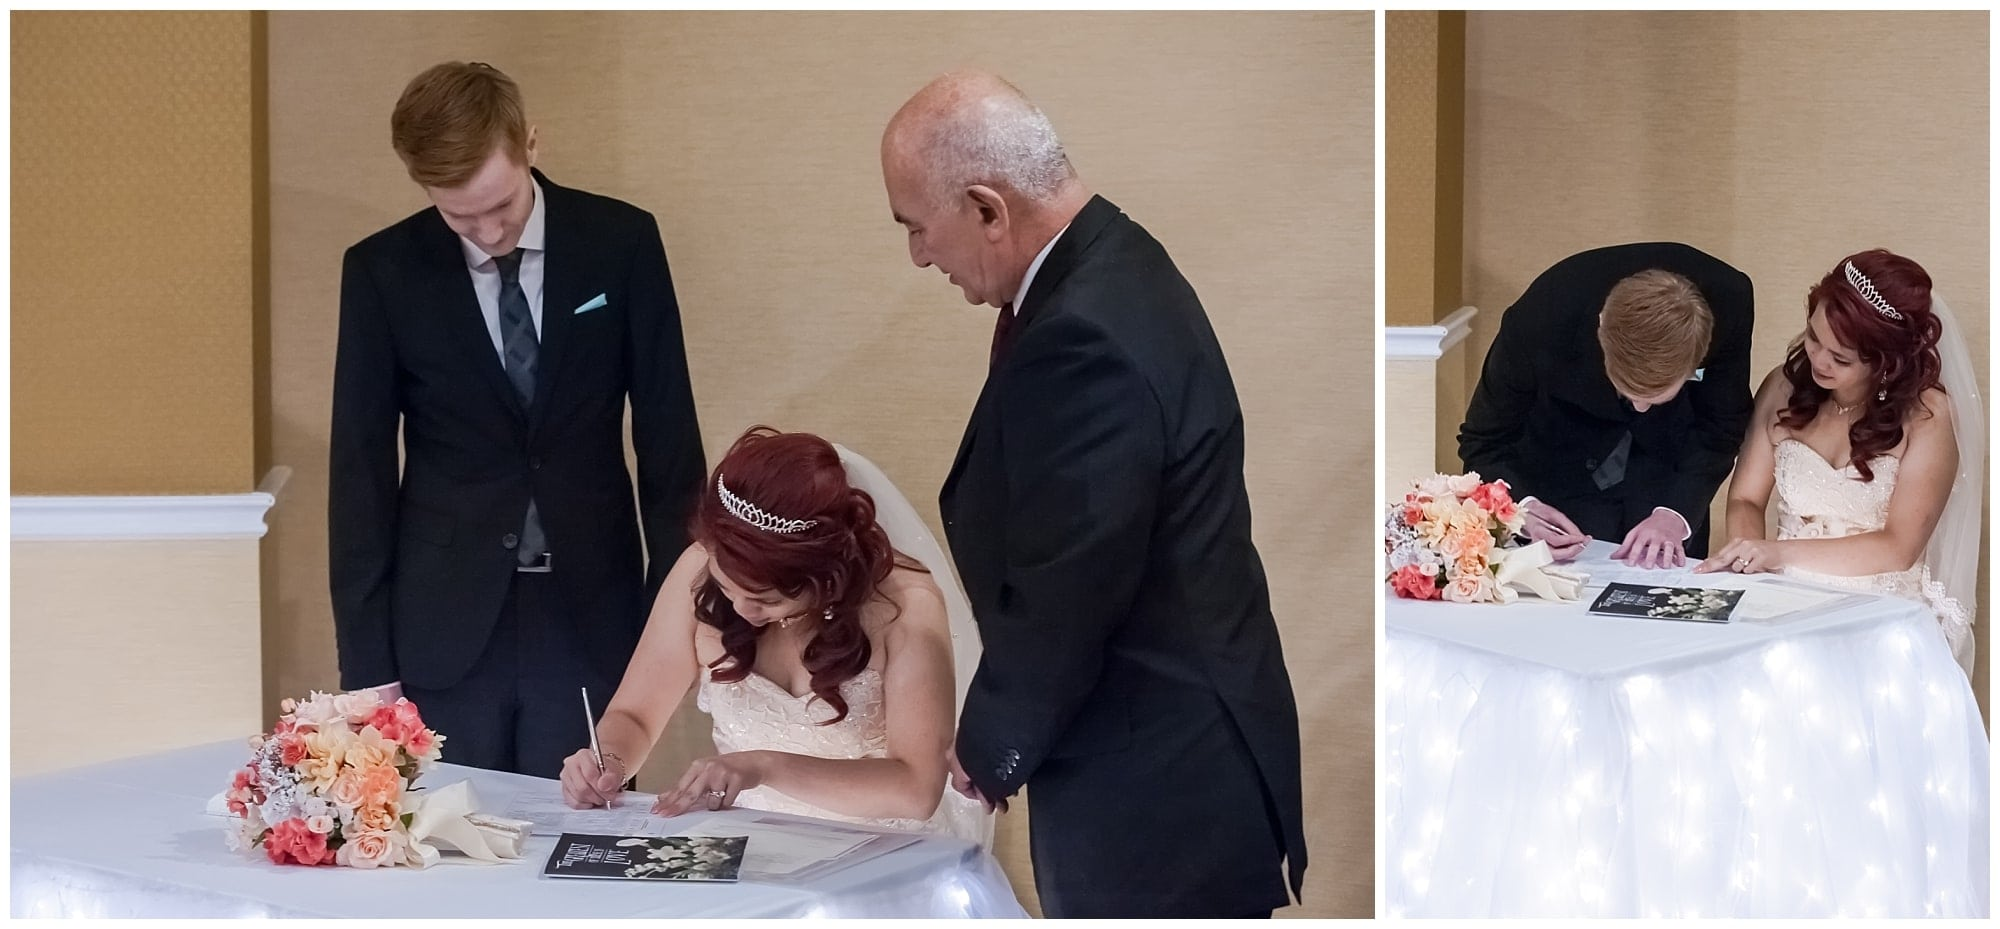 The bride and groom sign their marriage certificate during their wedding at the Atlantica Hotel in Halifax.